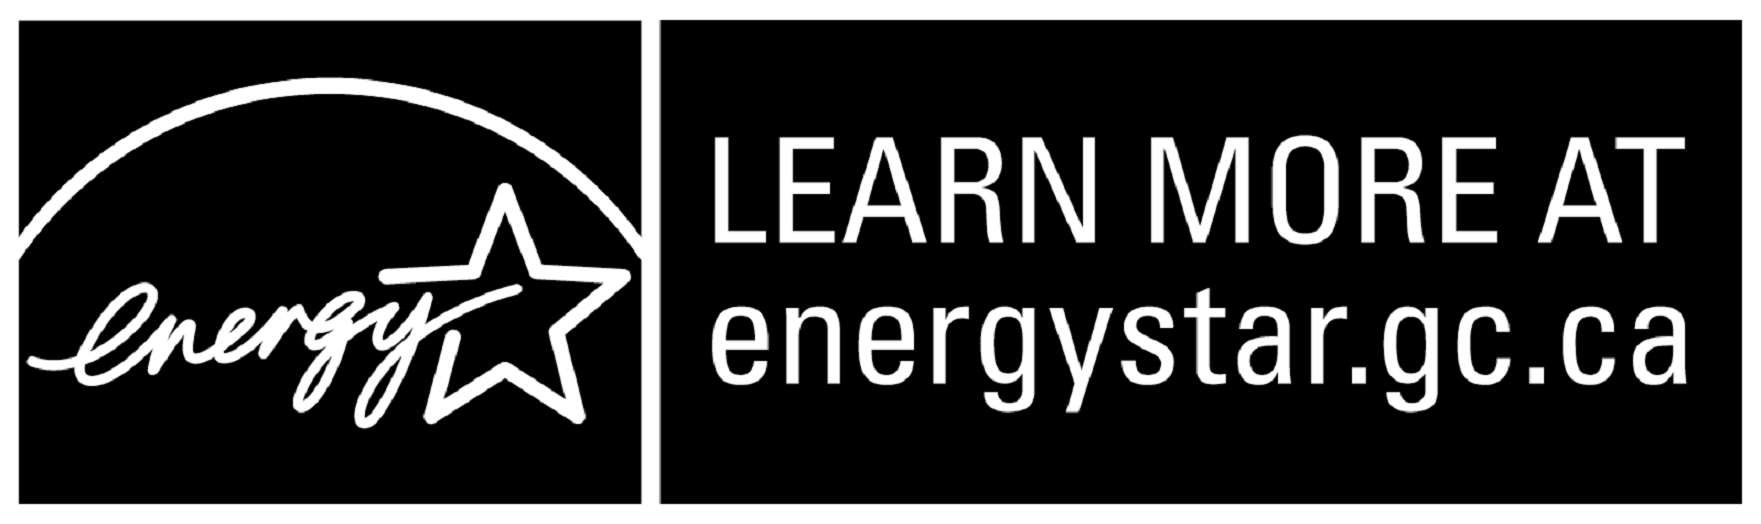 LEARN MORE AT energystar.gc.ca, horizontal black symbol